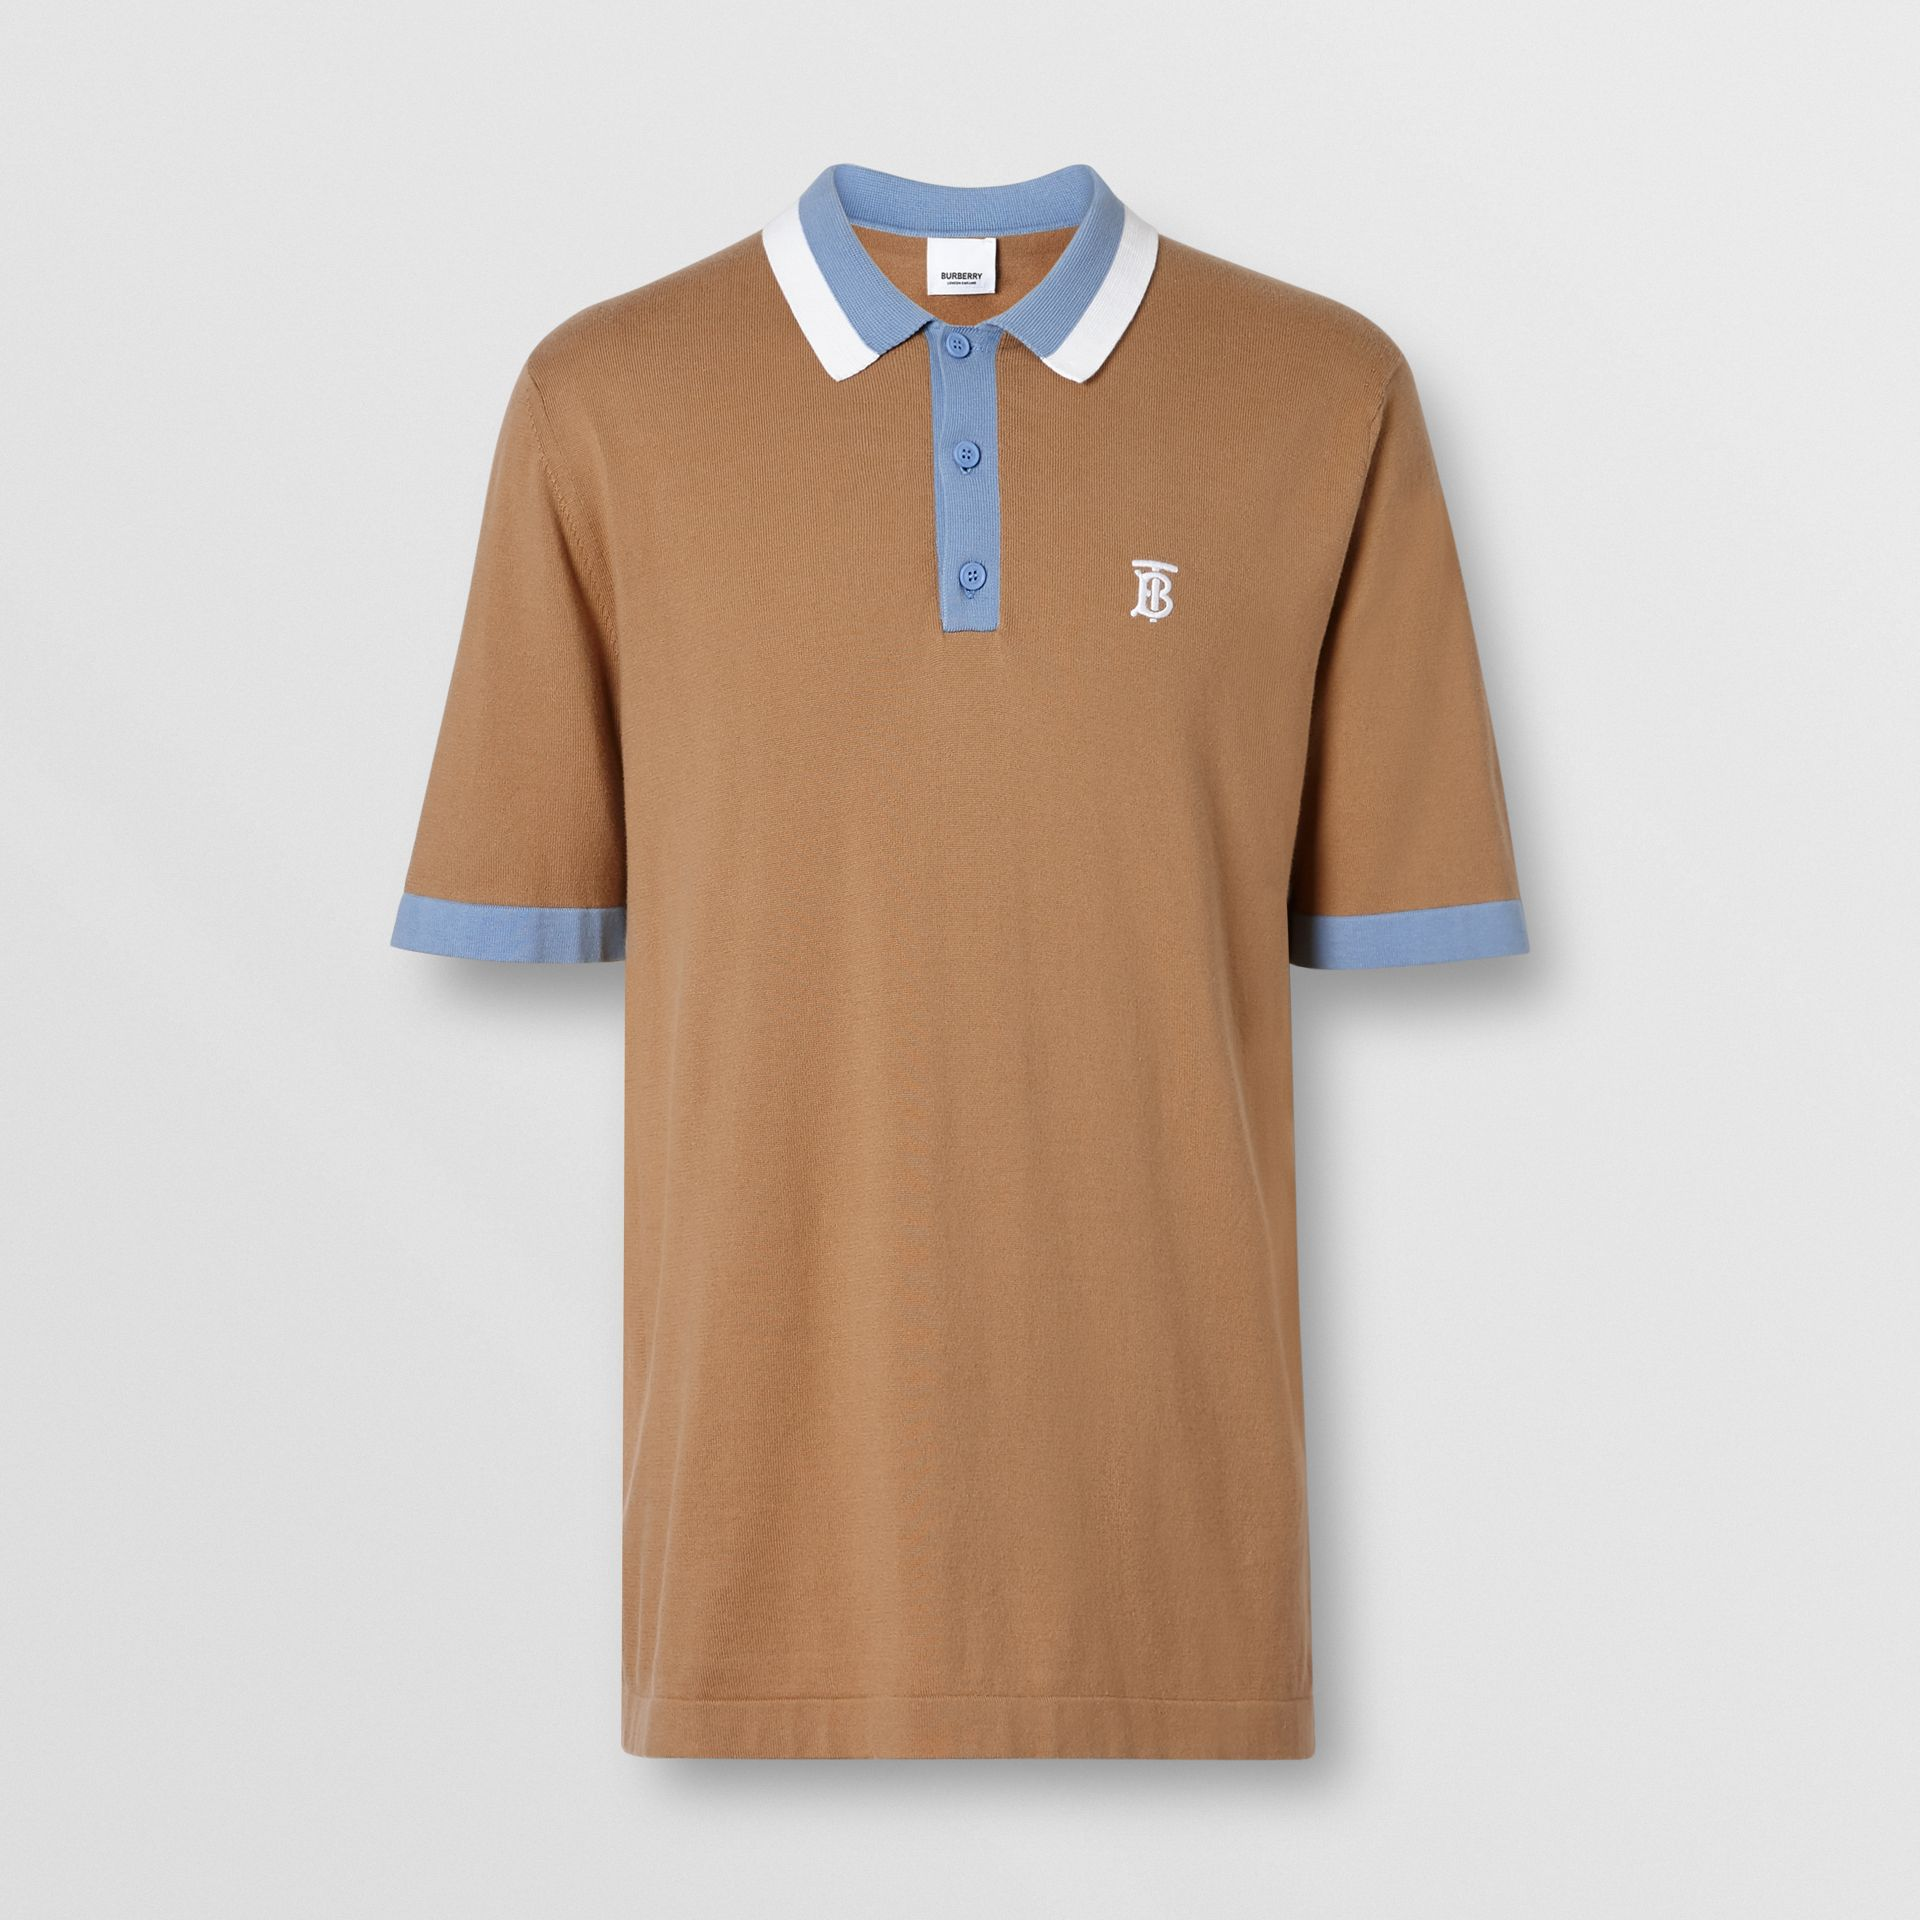 Monogram Motif Tipped Cotton Polo Shirt in Camel - Men | Burberry United Kingdom - gallery image 3